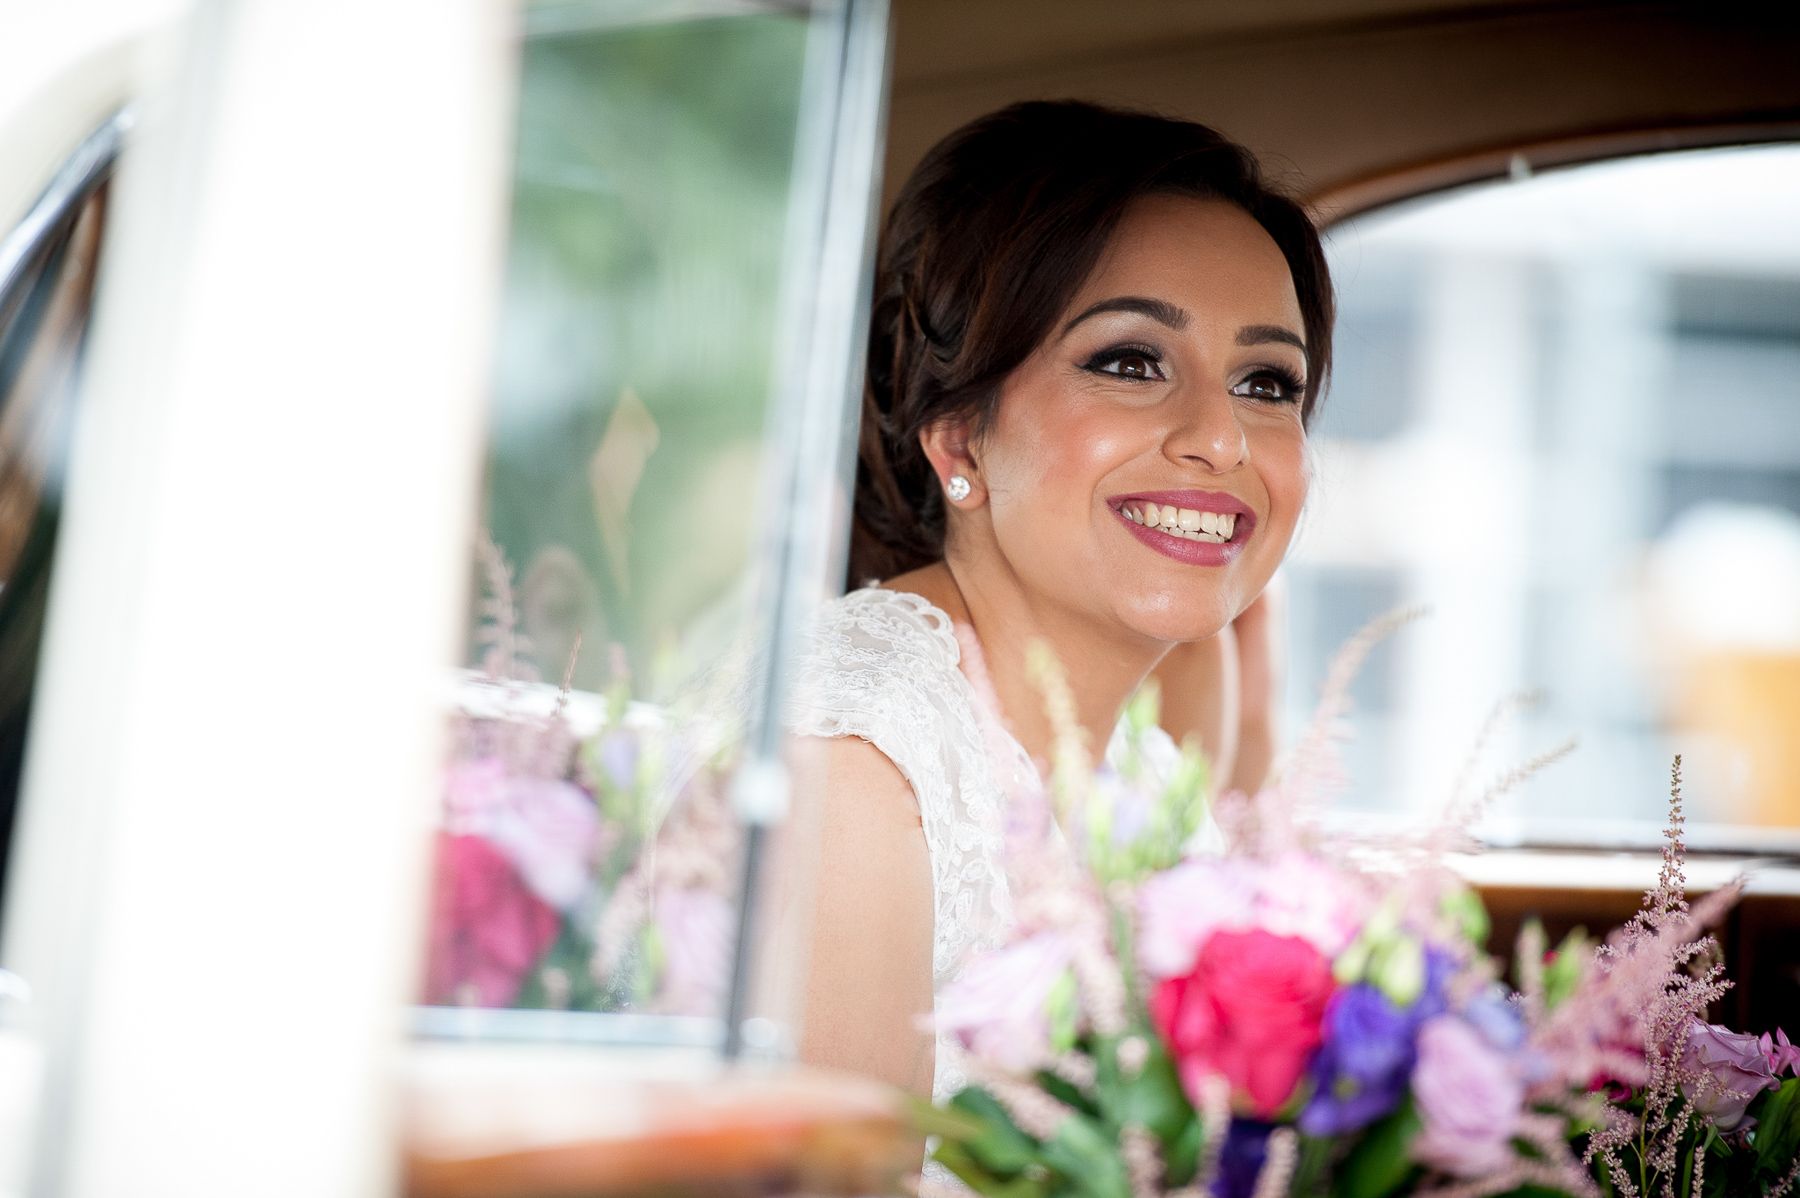 For Now Here Are Some Highlights Of Their Registry Wedding In Leicester